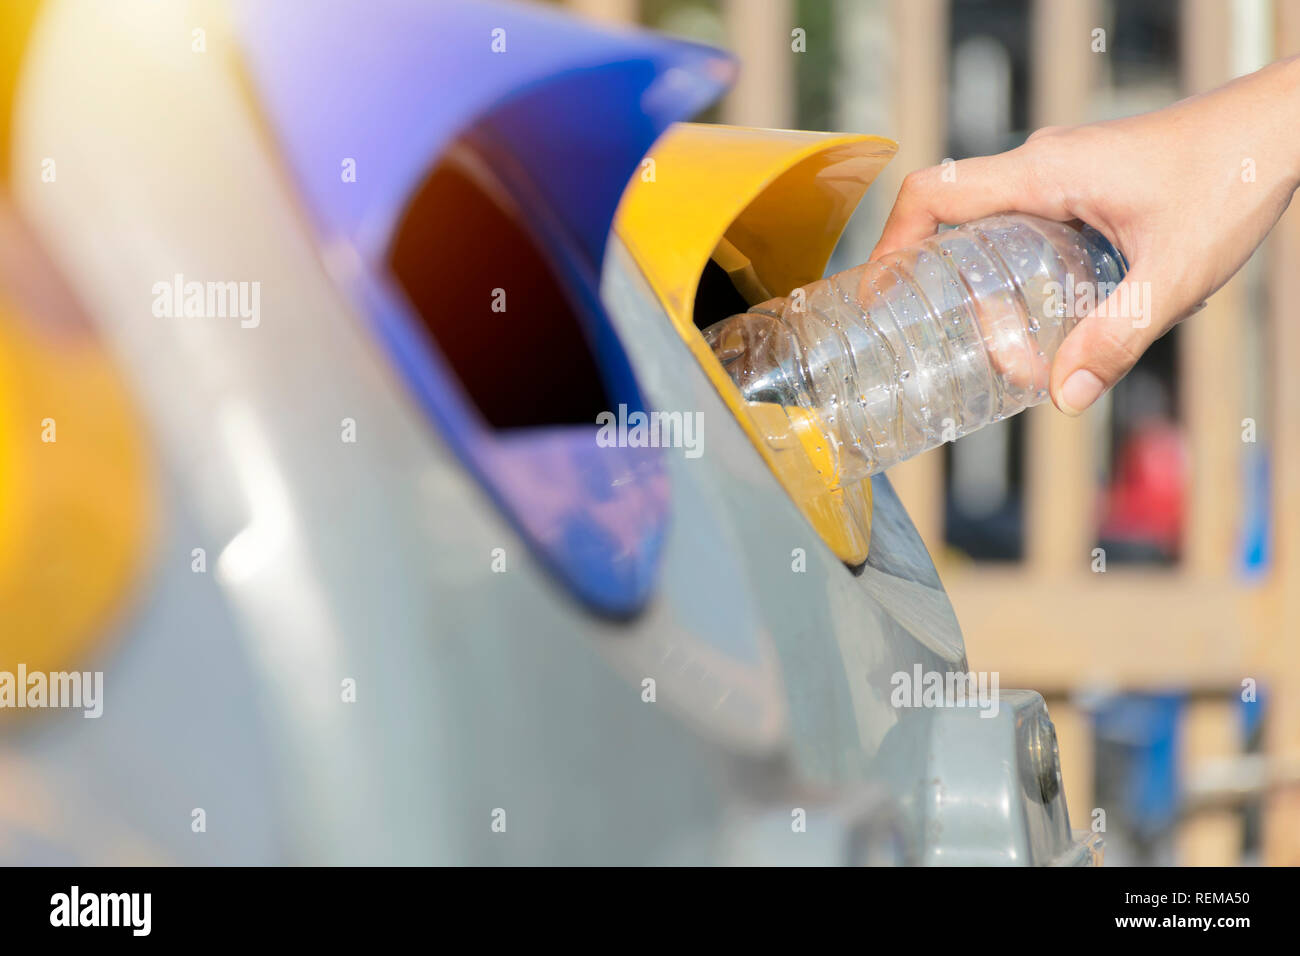 Close up hand throwing empty plastic bottle into the trash Recycling Concept. Dispose of recyclable waste to be able to reuse. - Stock Image